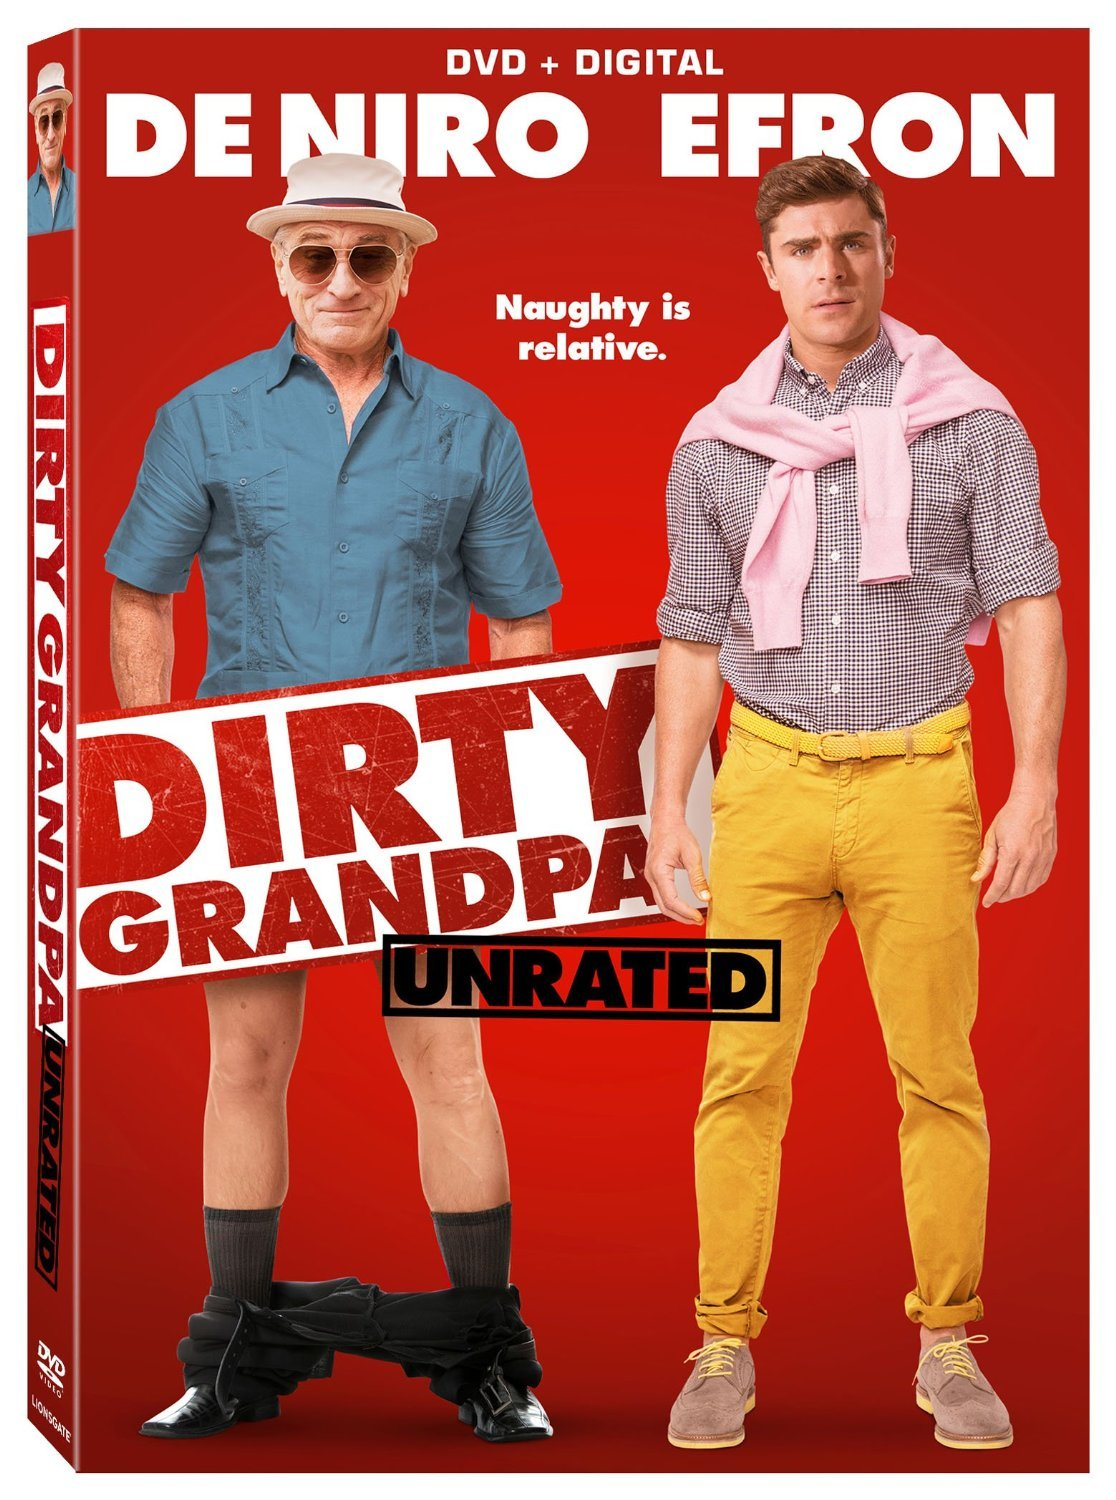 Dirty Grandpa (Unrated) [DVD + Digital] (2016) New